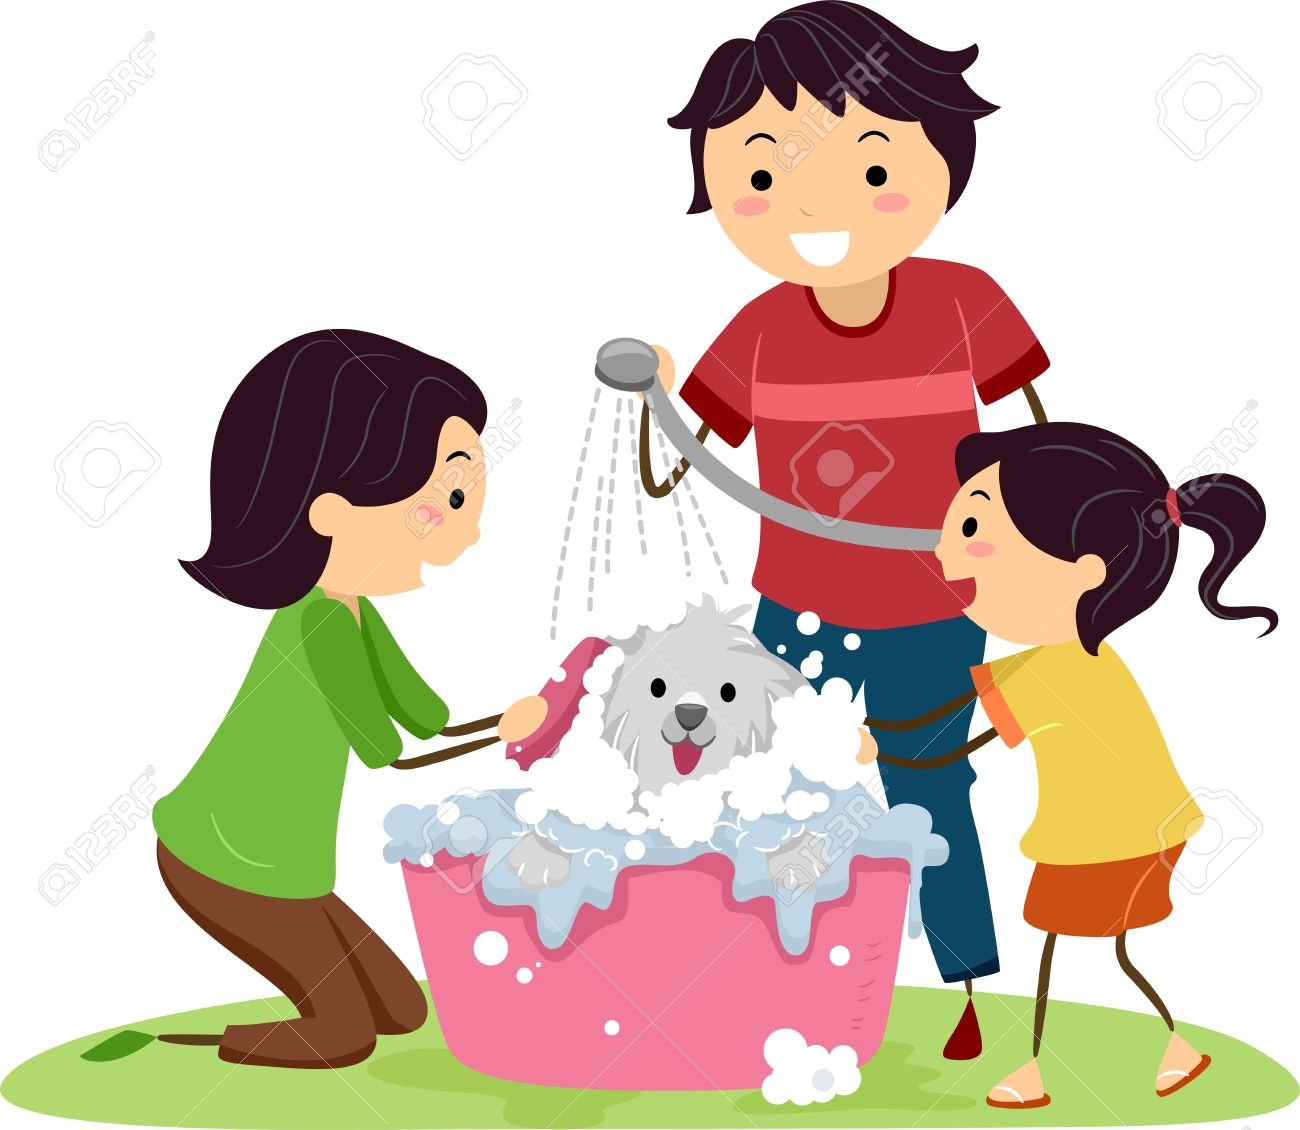 Illustration of a Family Giving Their Dog a Bath Stock Illustration - 13131960